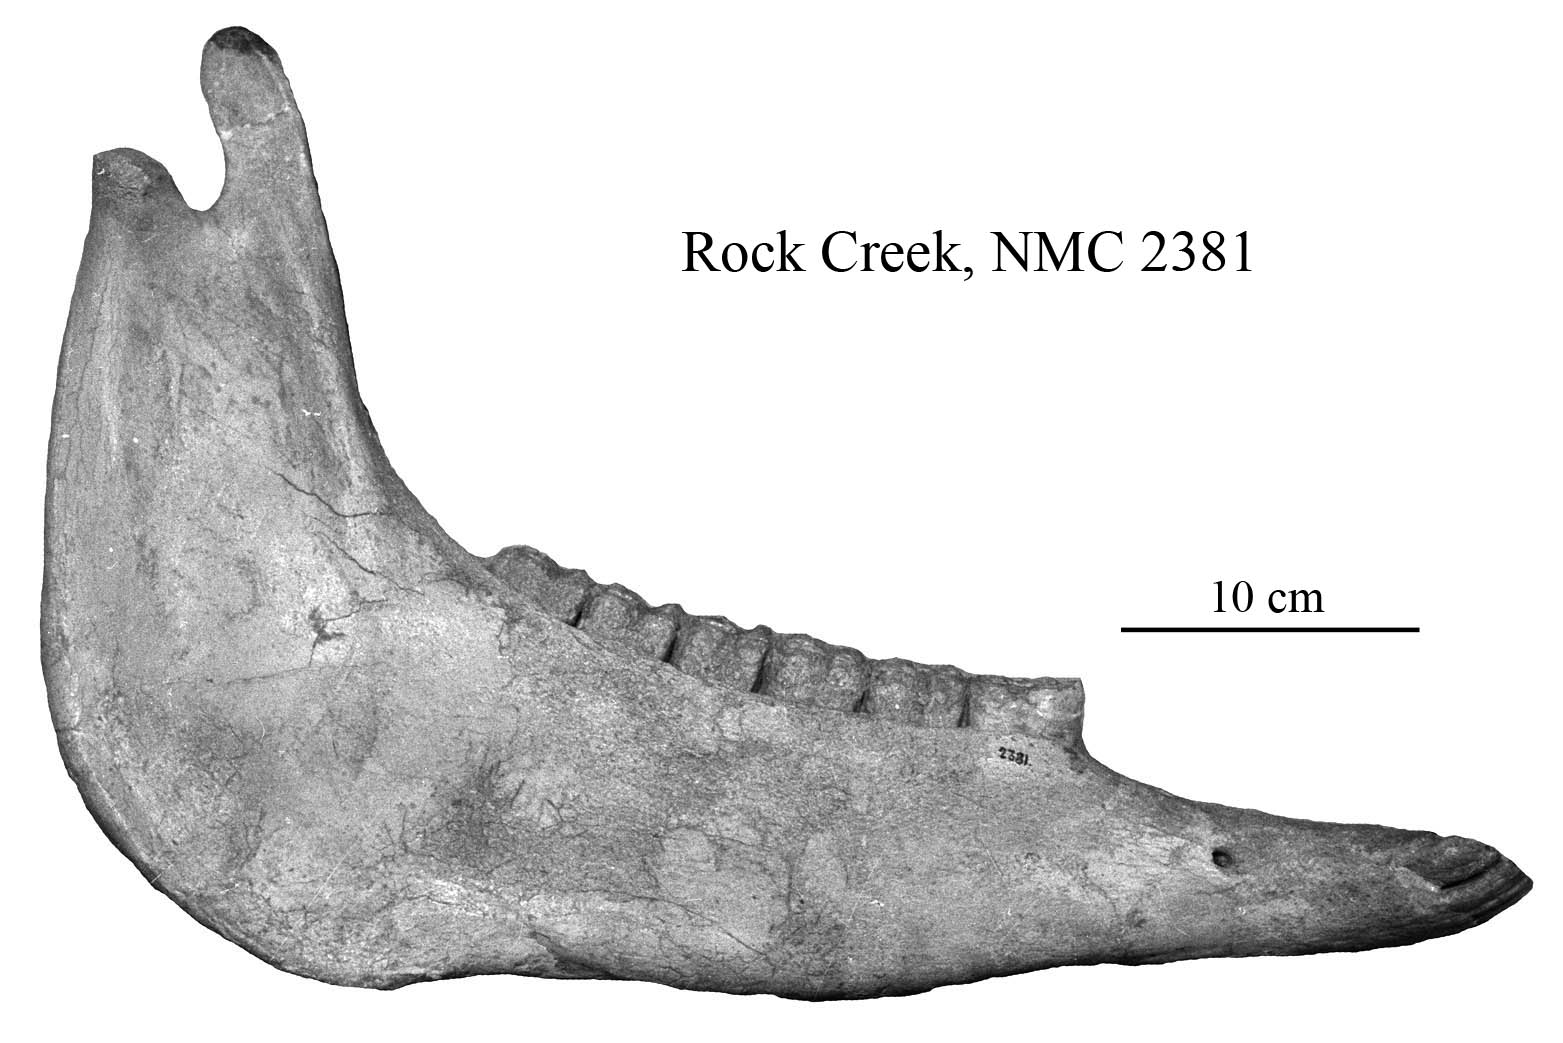 E. scotti NMC 2381, mandible profile